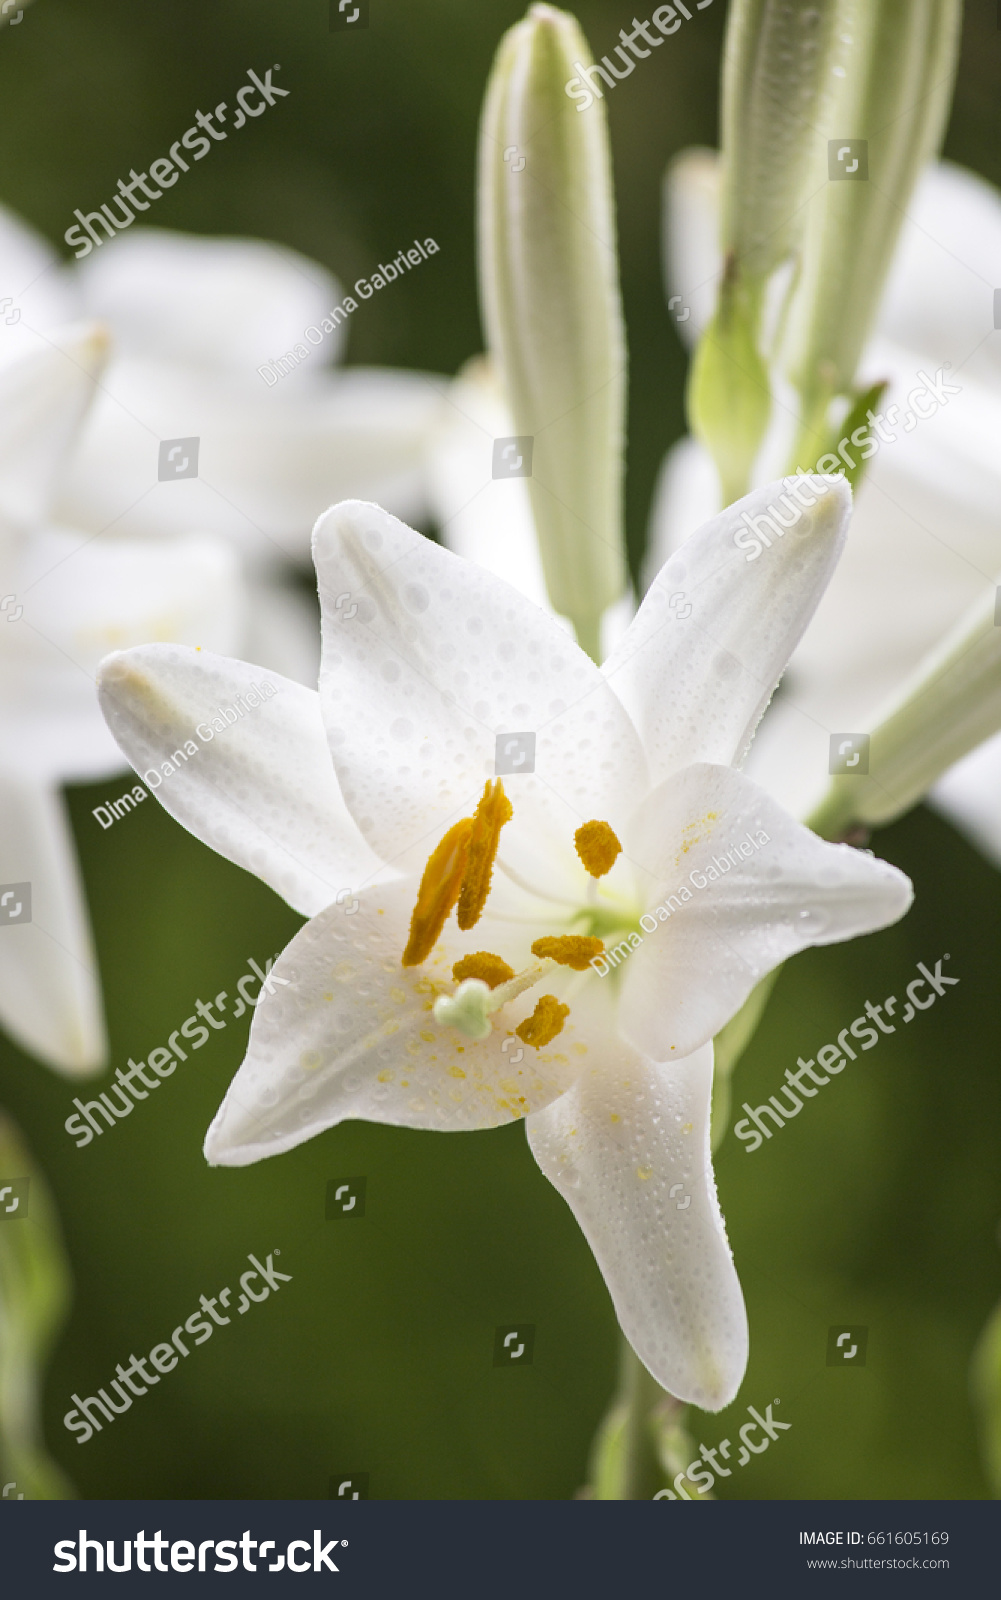 White Lily Flower In Garden Colorful Green Background Spring